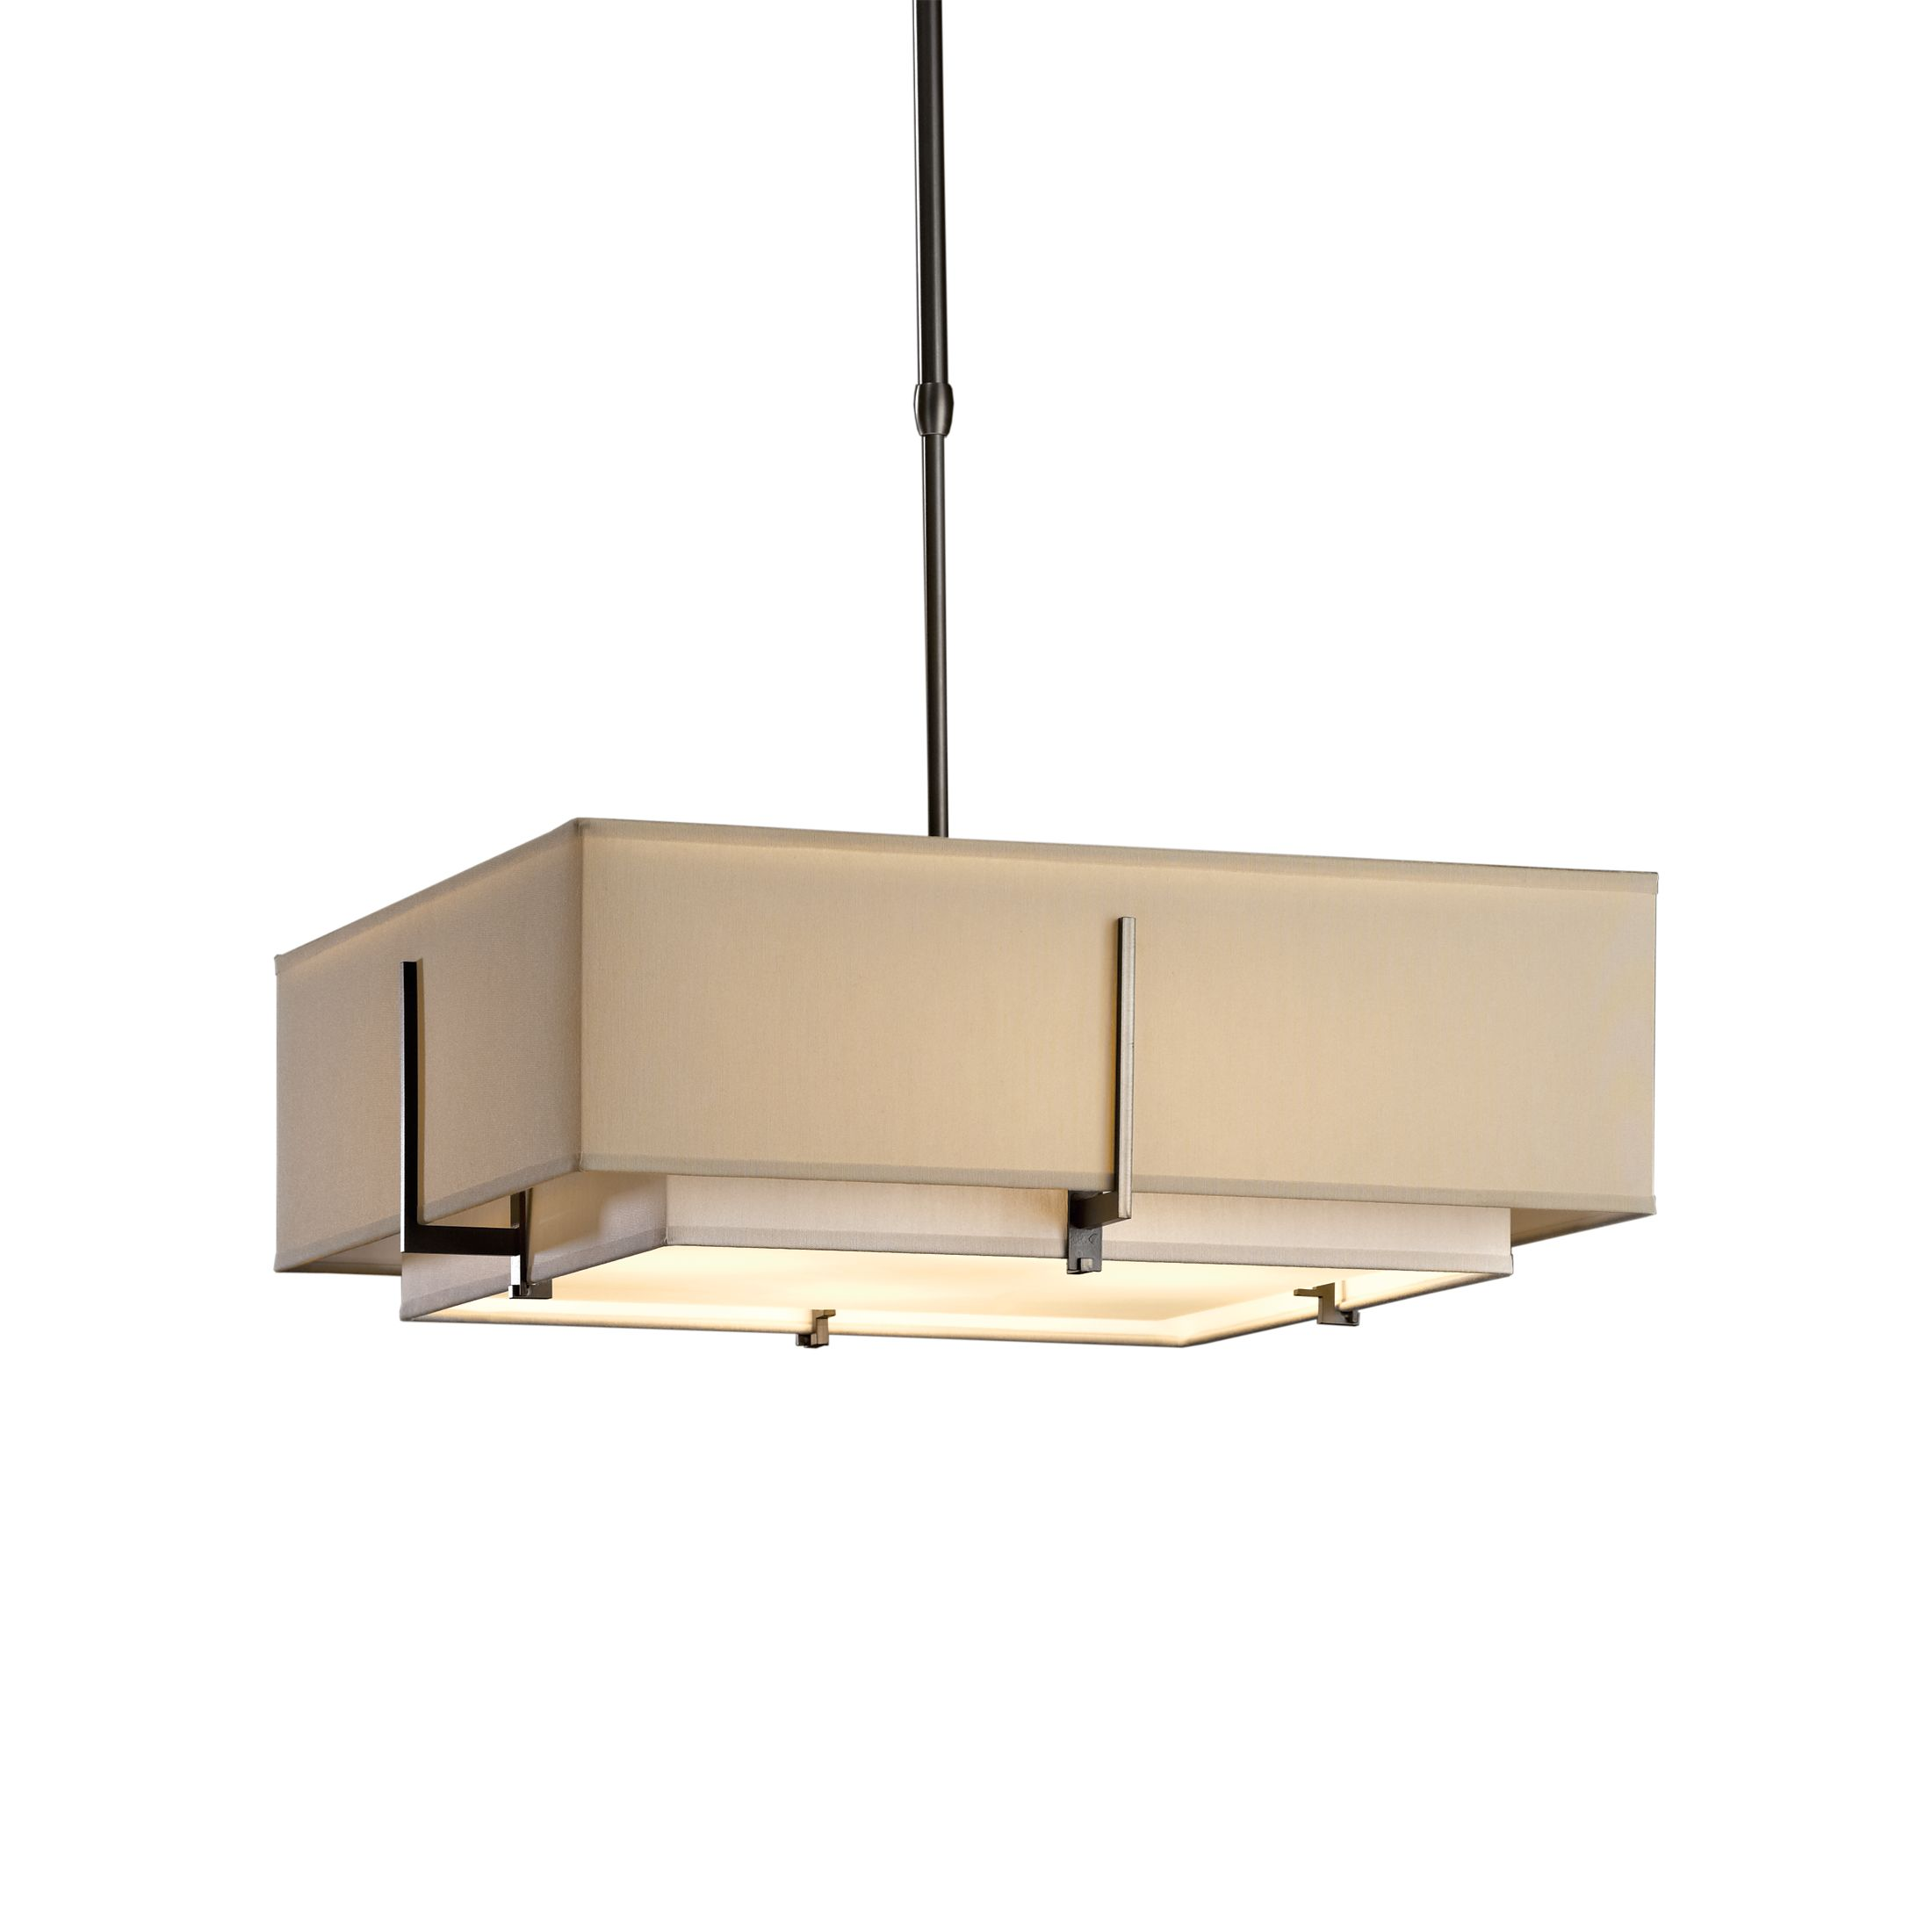 esto square led proteus ledrise ceilings cover ceiling acryl light